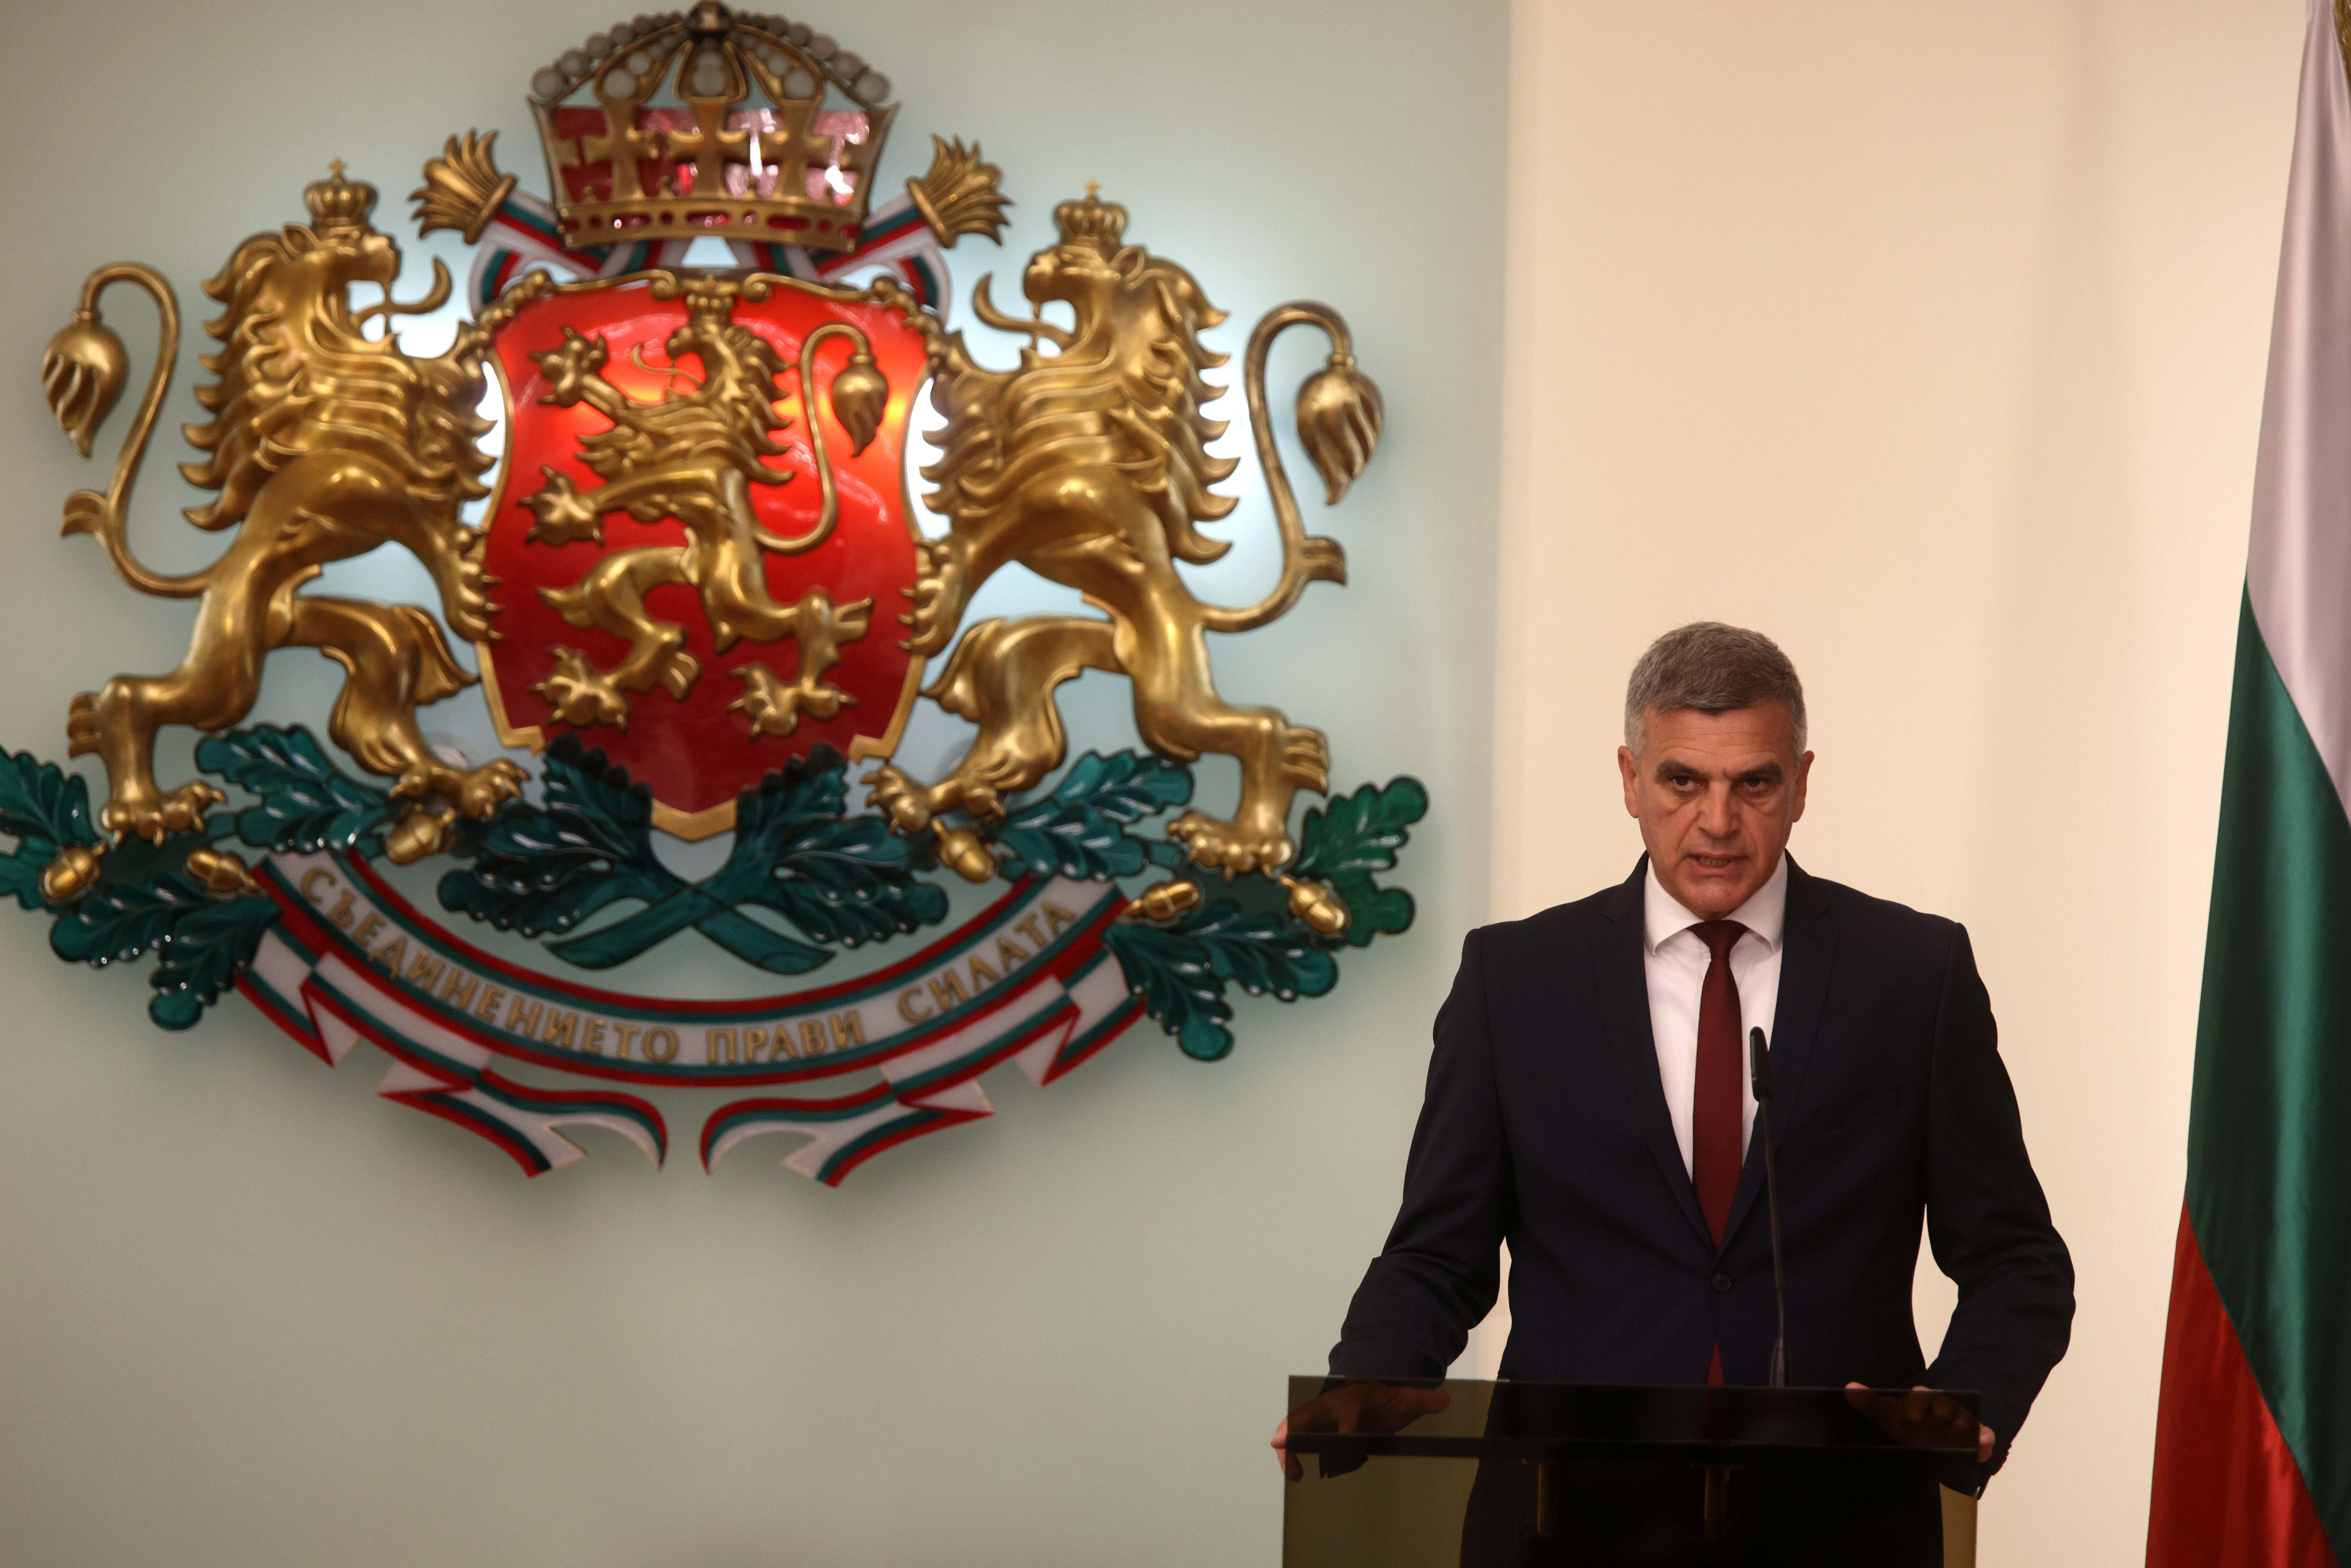 Newly appointed caretaker Prime Minister Stefan Yanev delivers his speech during an official ceremony in Sofia, Bulgaria, May 12, 2021. REUTERS/Stoyan Nenov